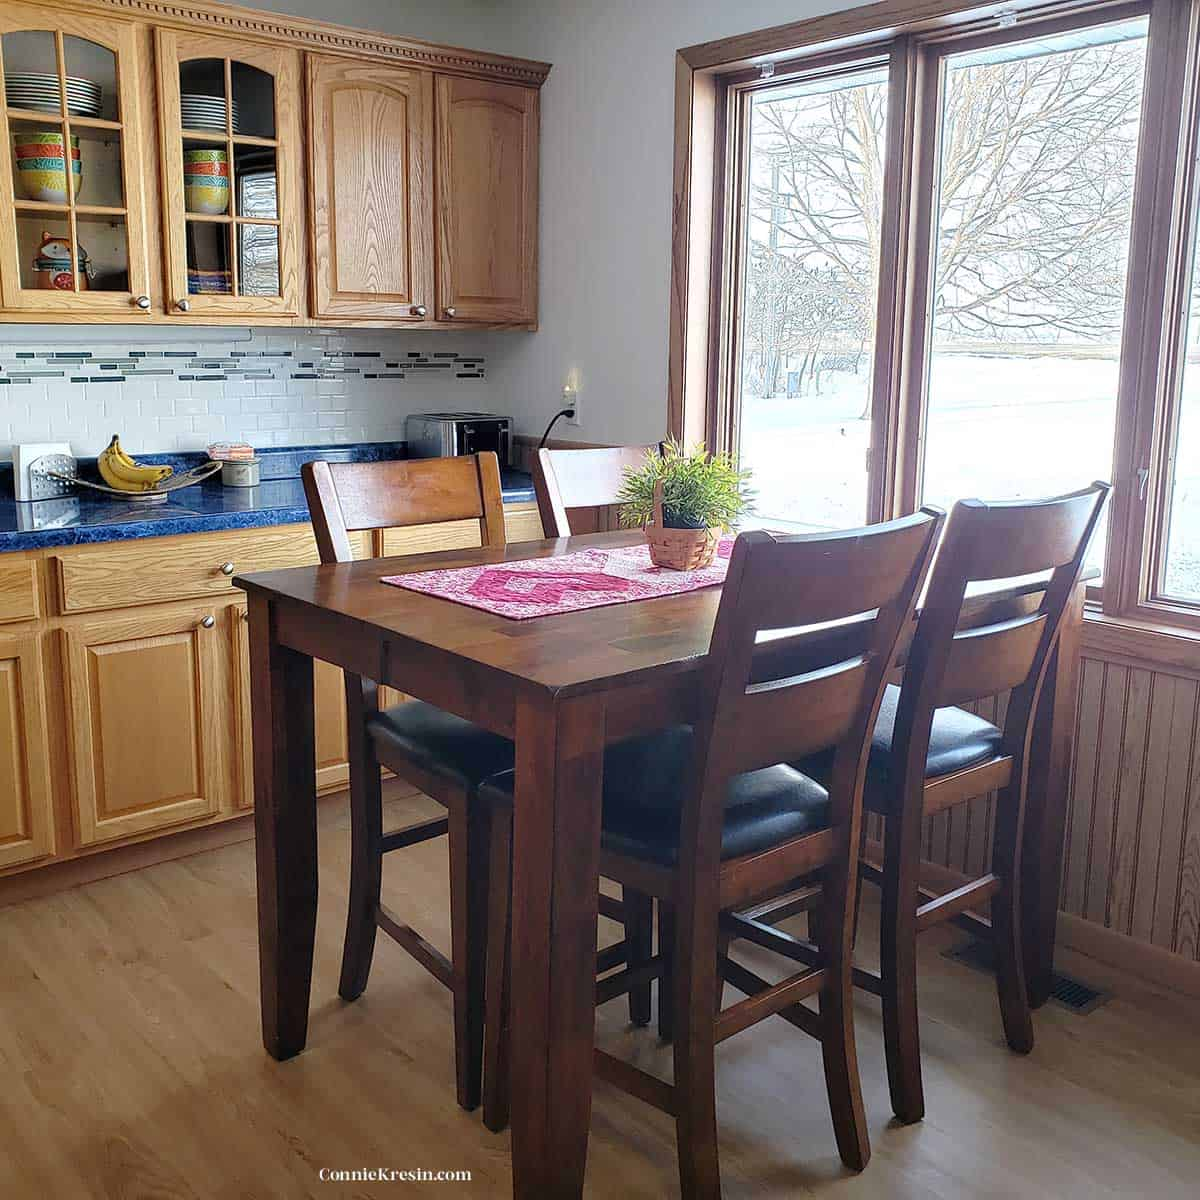 New to us kitchen table